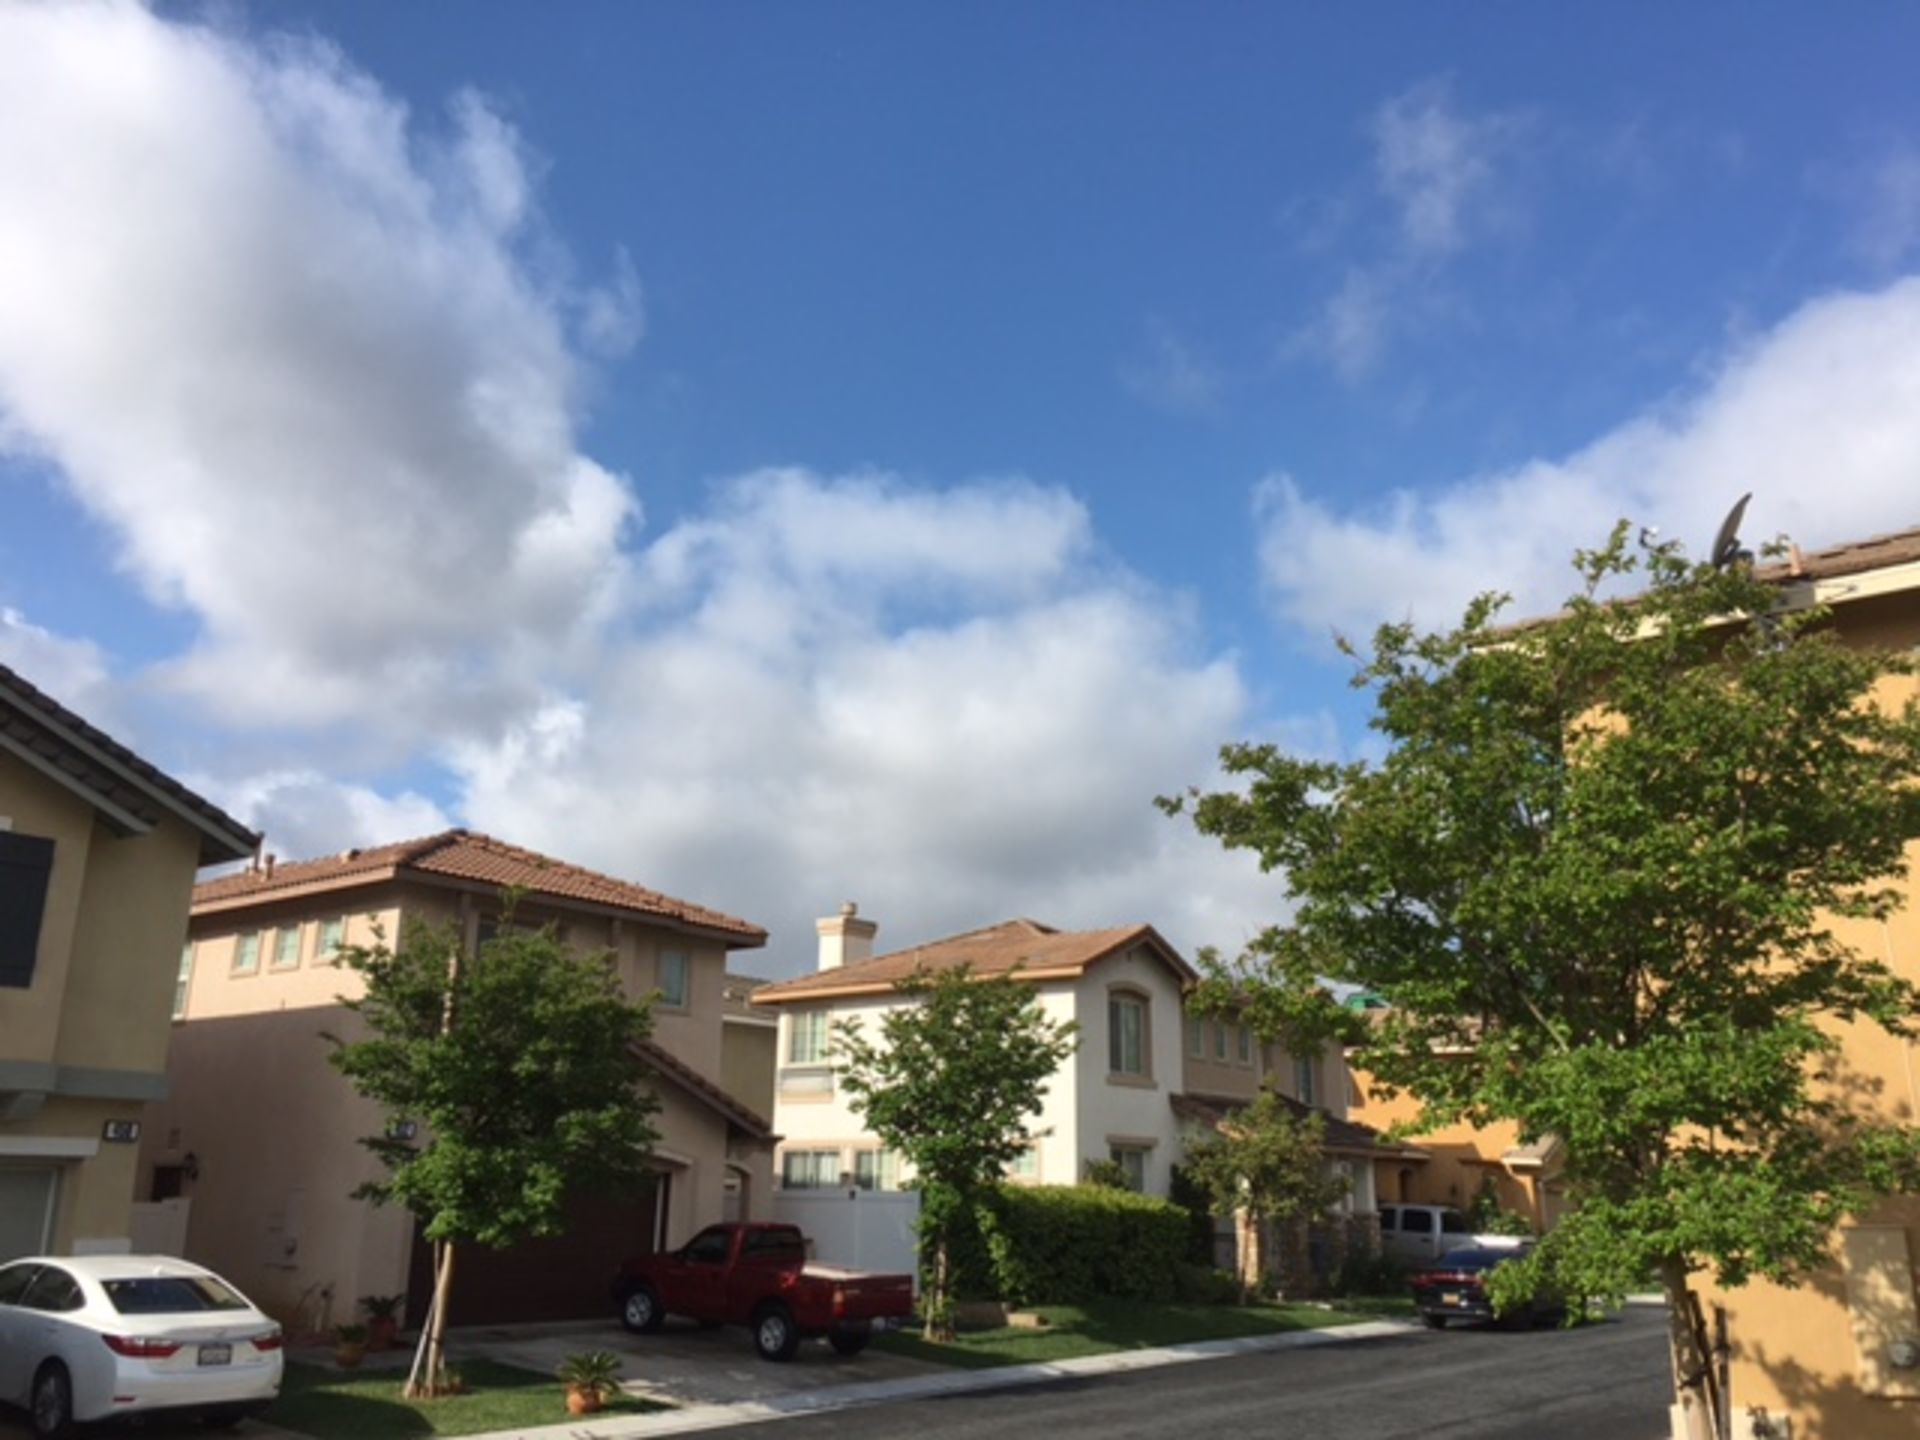 Valencia Creekside Sky High? Try Fillmore Instead